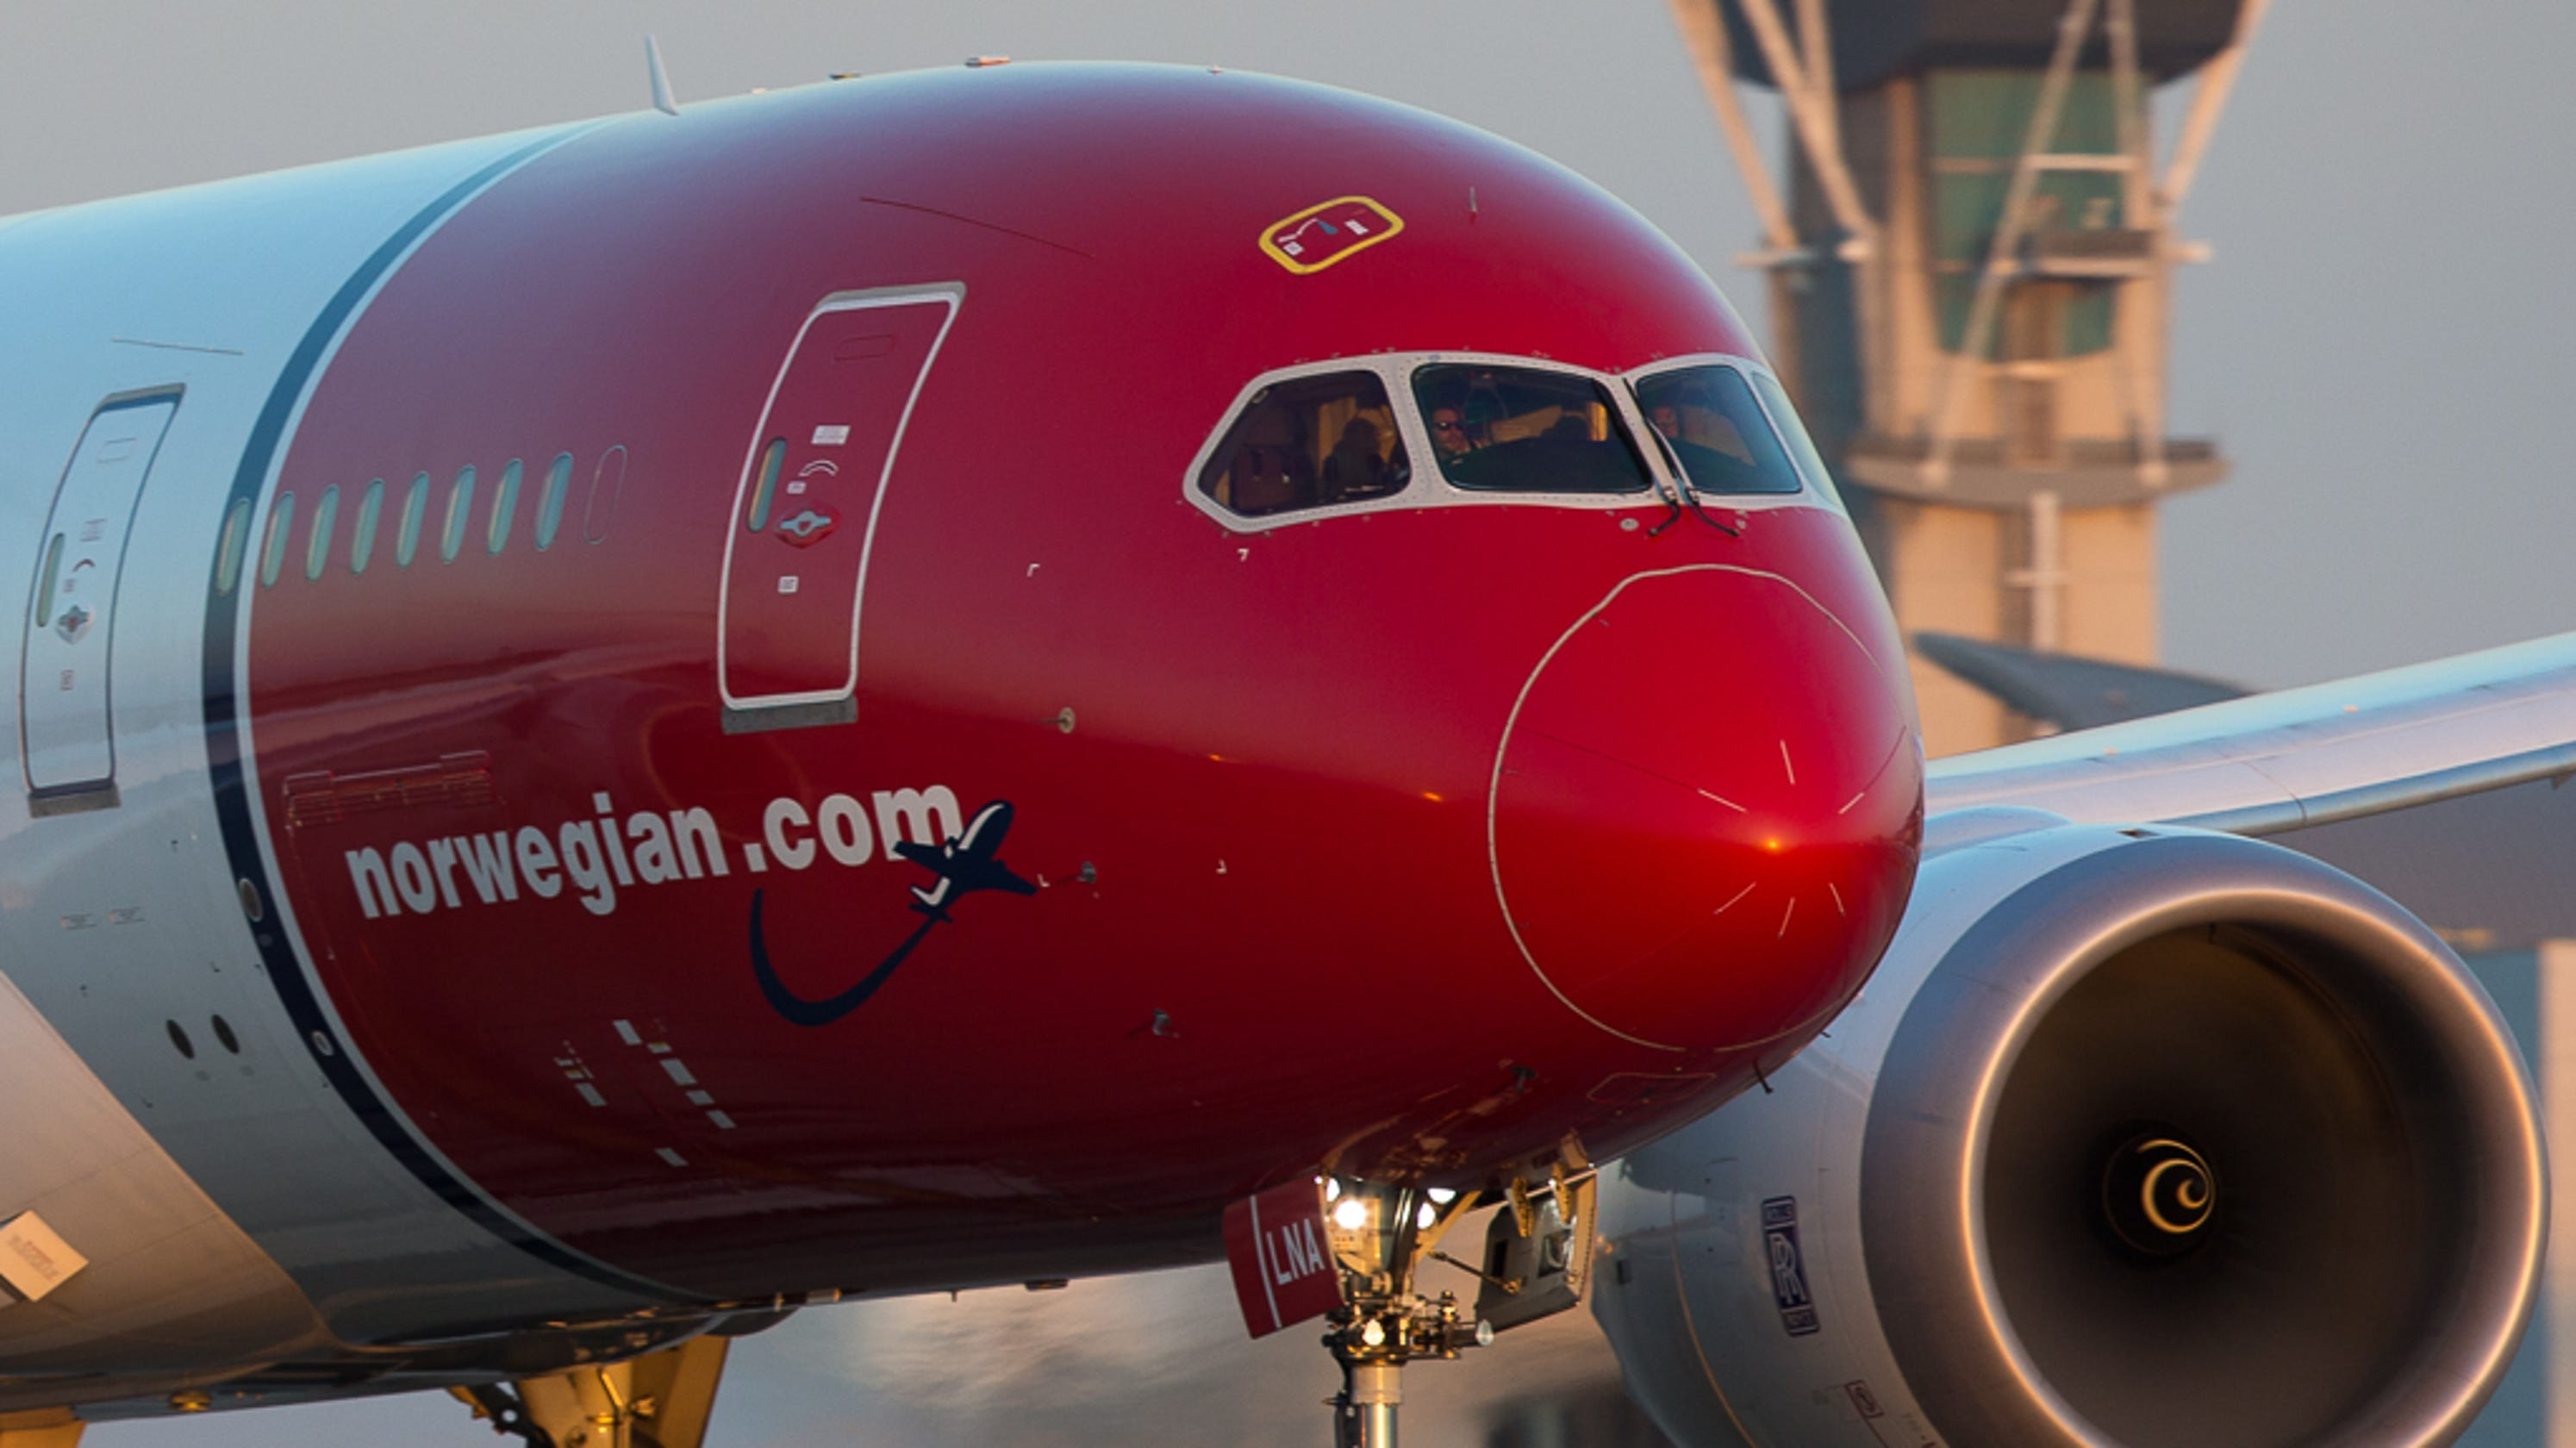 Norwegian Air: Flights to Dublin from Stewart on track with Dreamliner